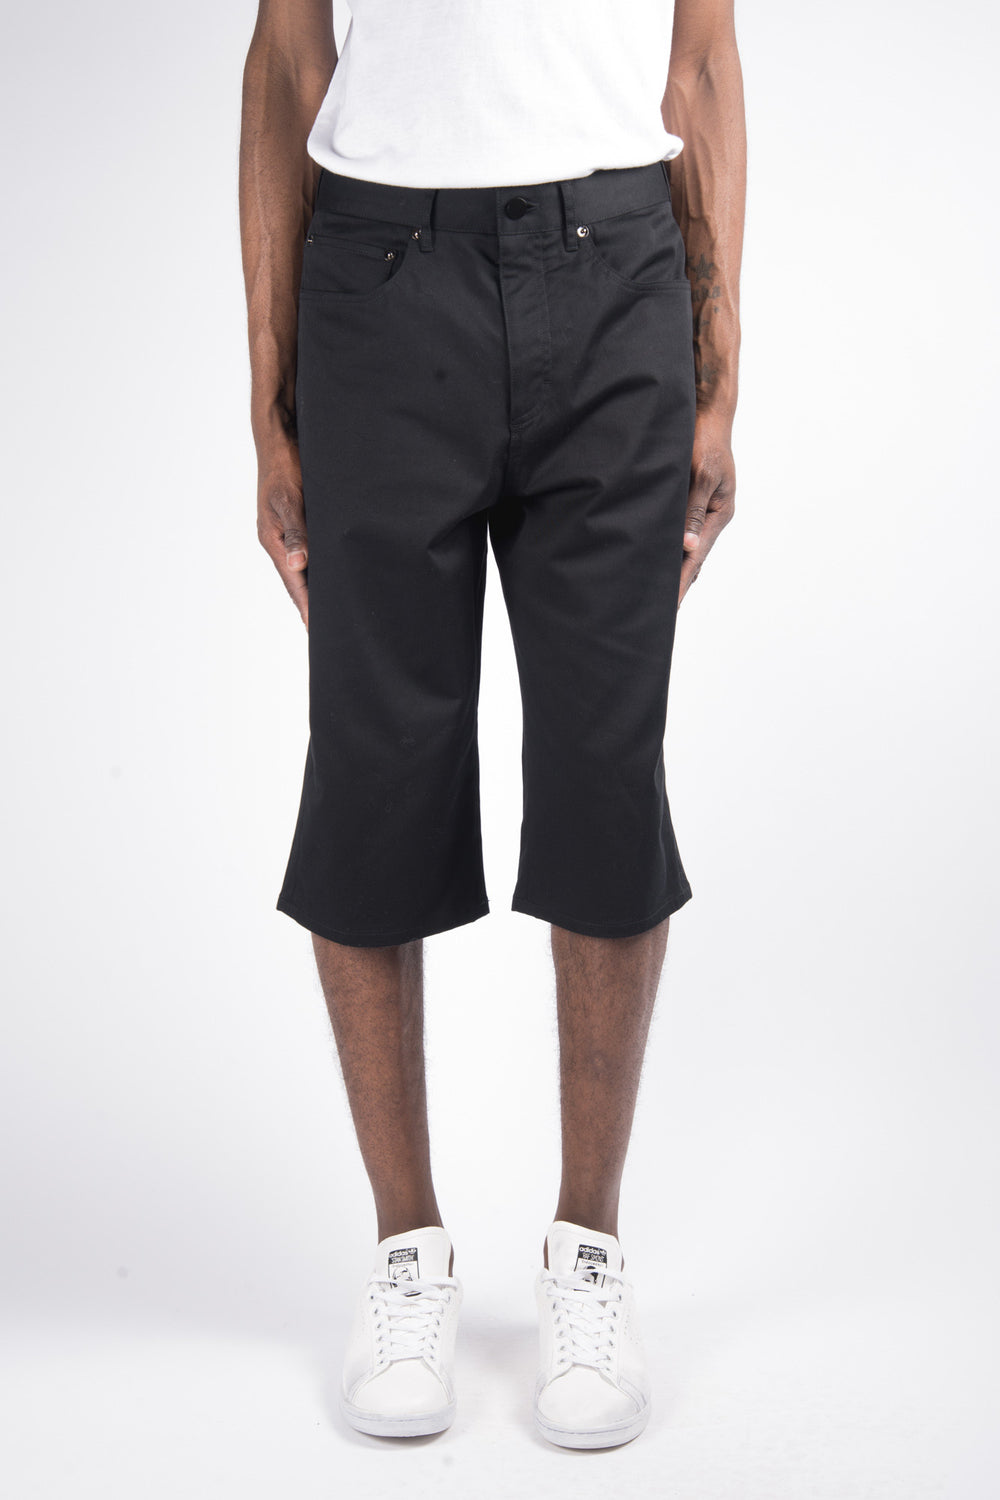 Alexander Wang Five Pocket Tailored Skate Short